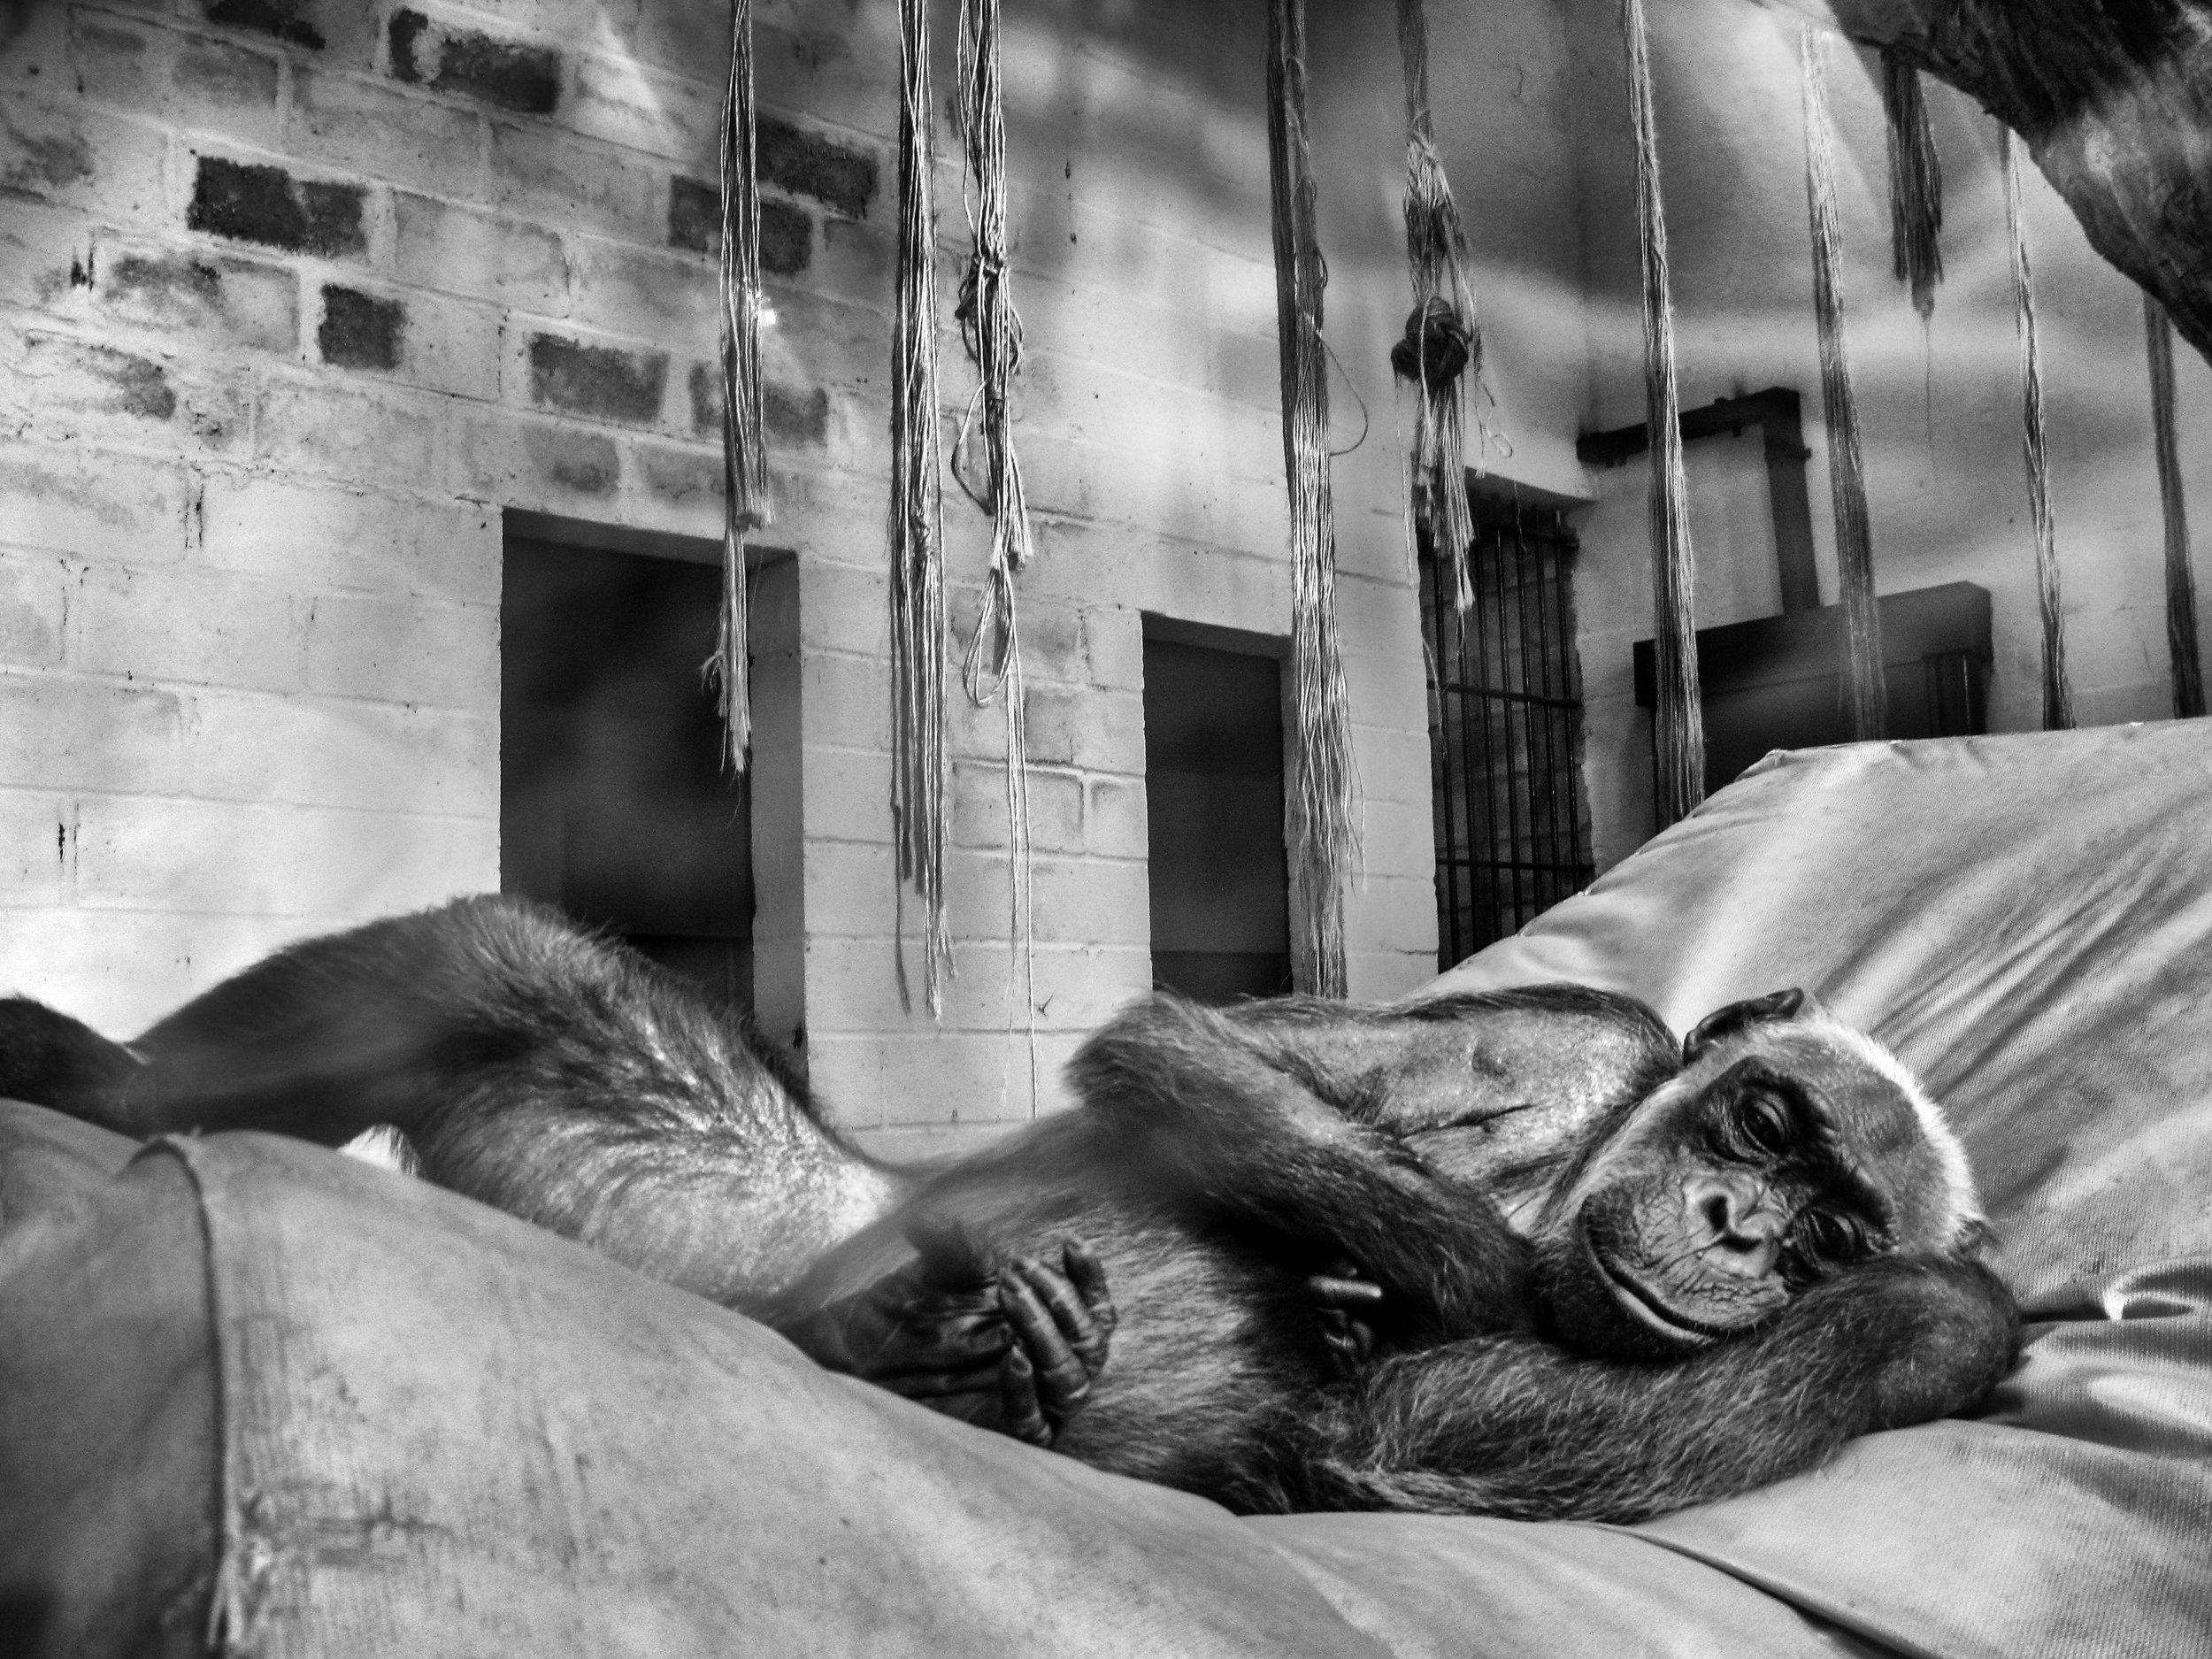 IMG_2273-bw-pancho-zoo-buenos-aires.jpg